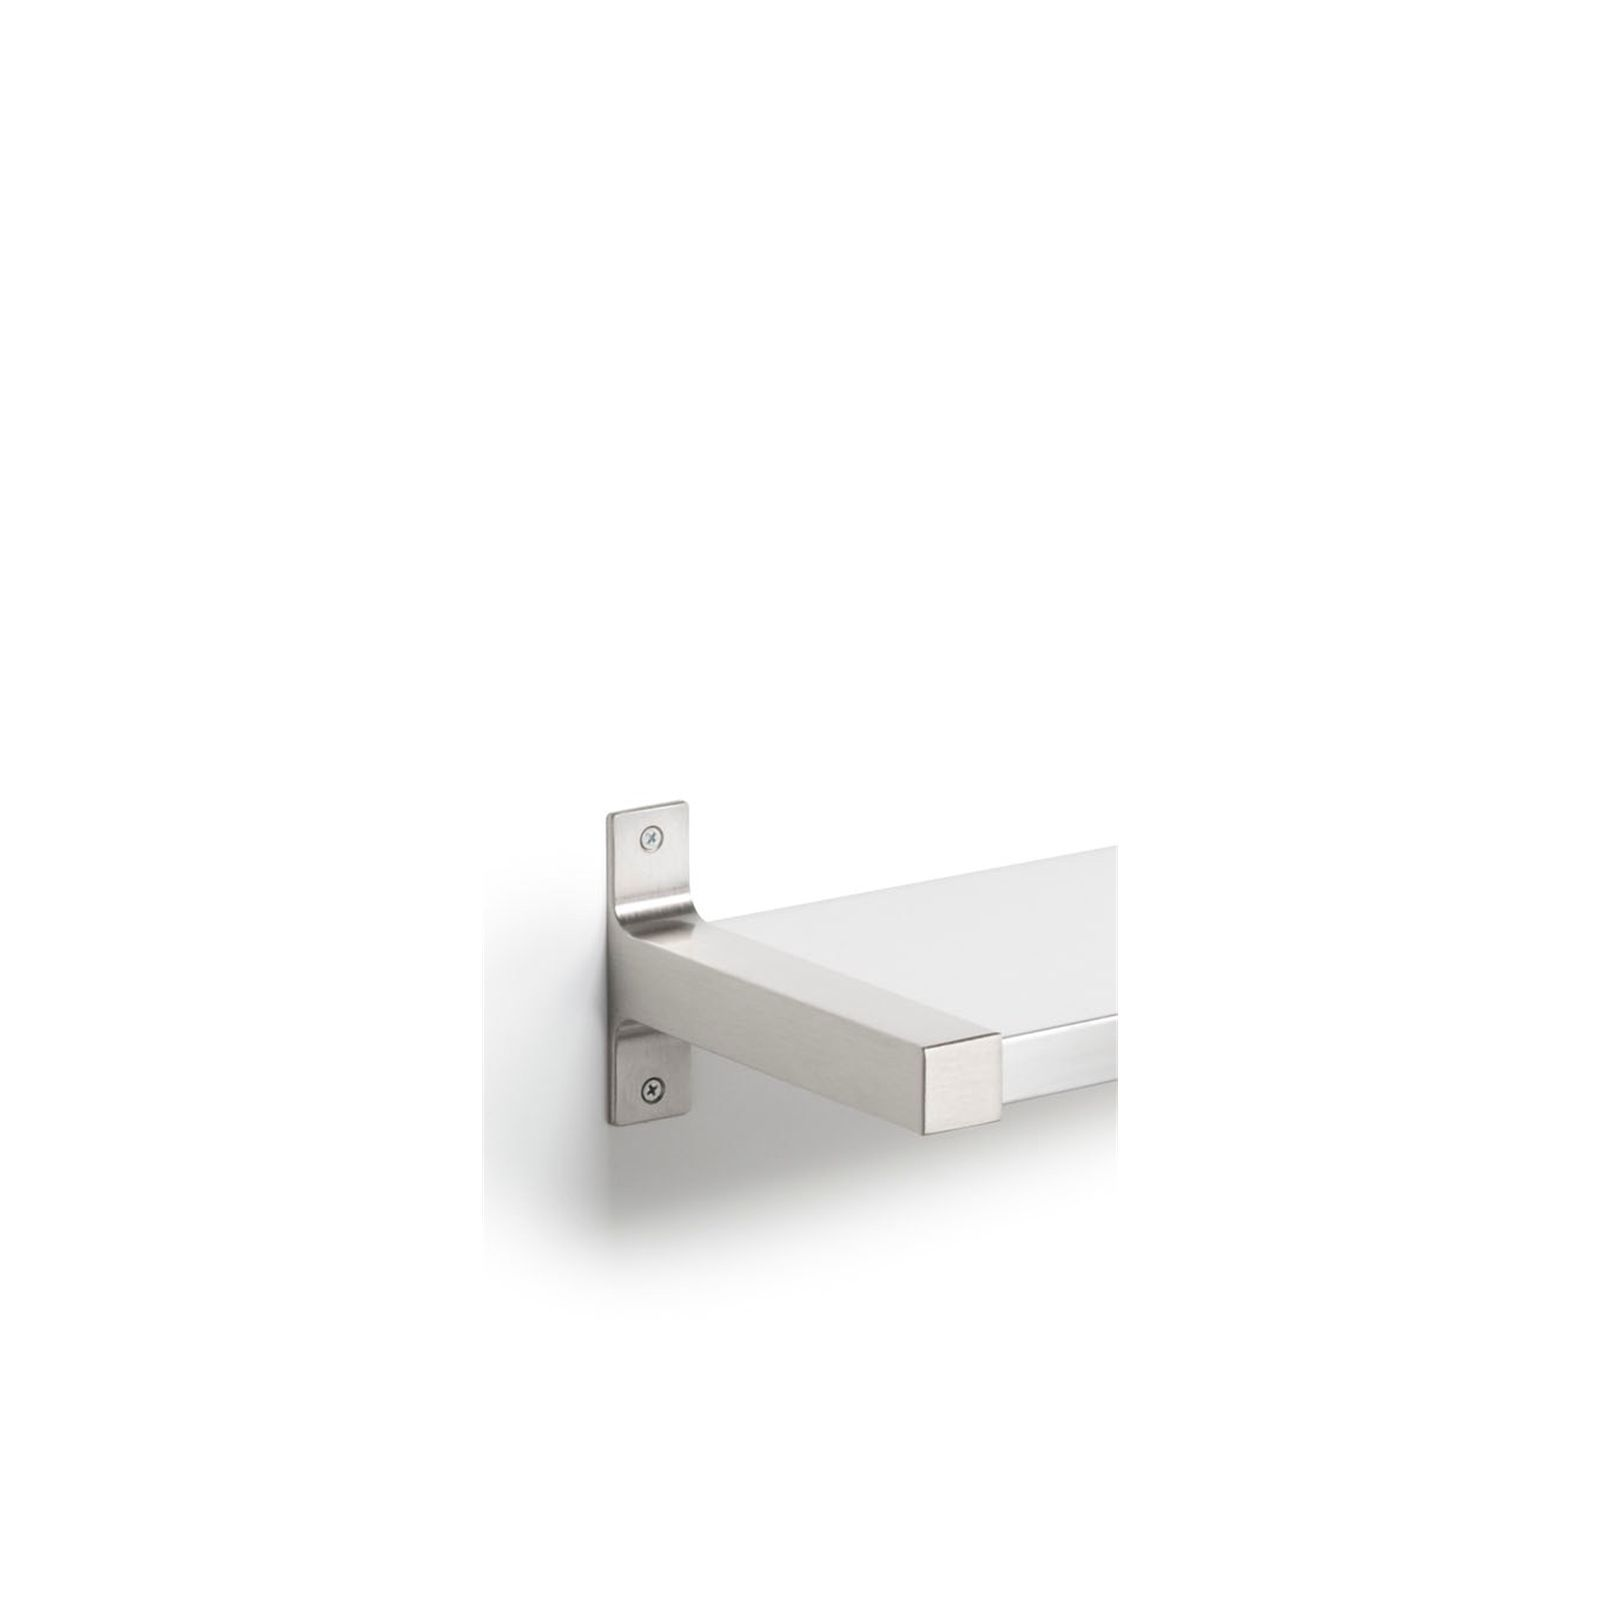 Handy Shelf End Bracket 190mm Left & Right Aluminium